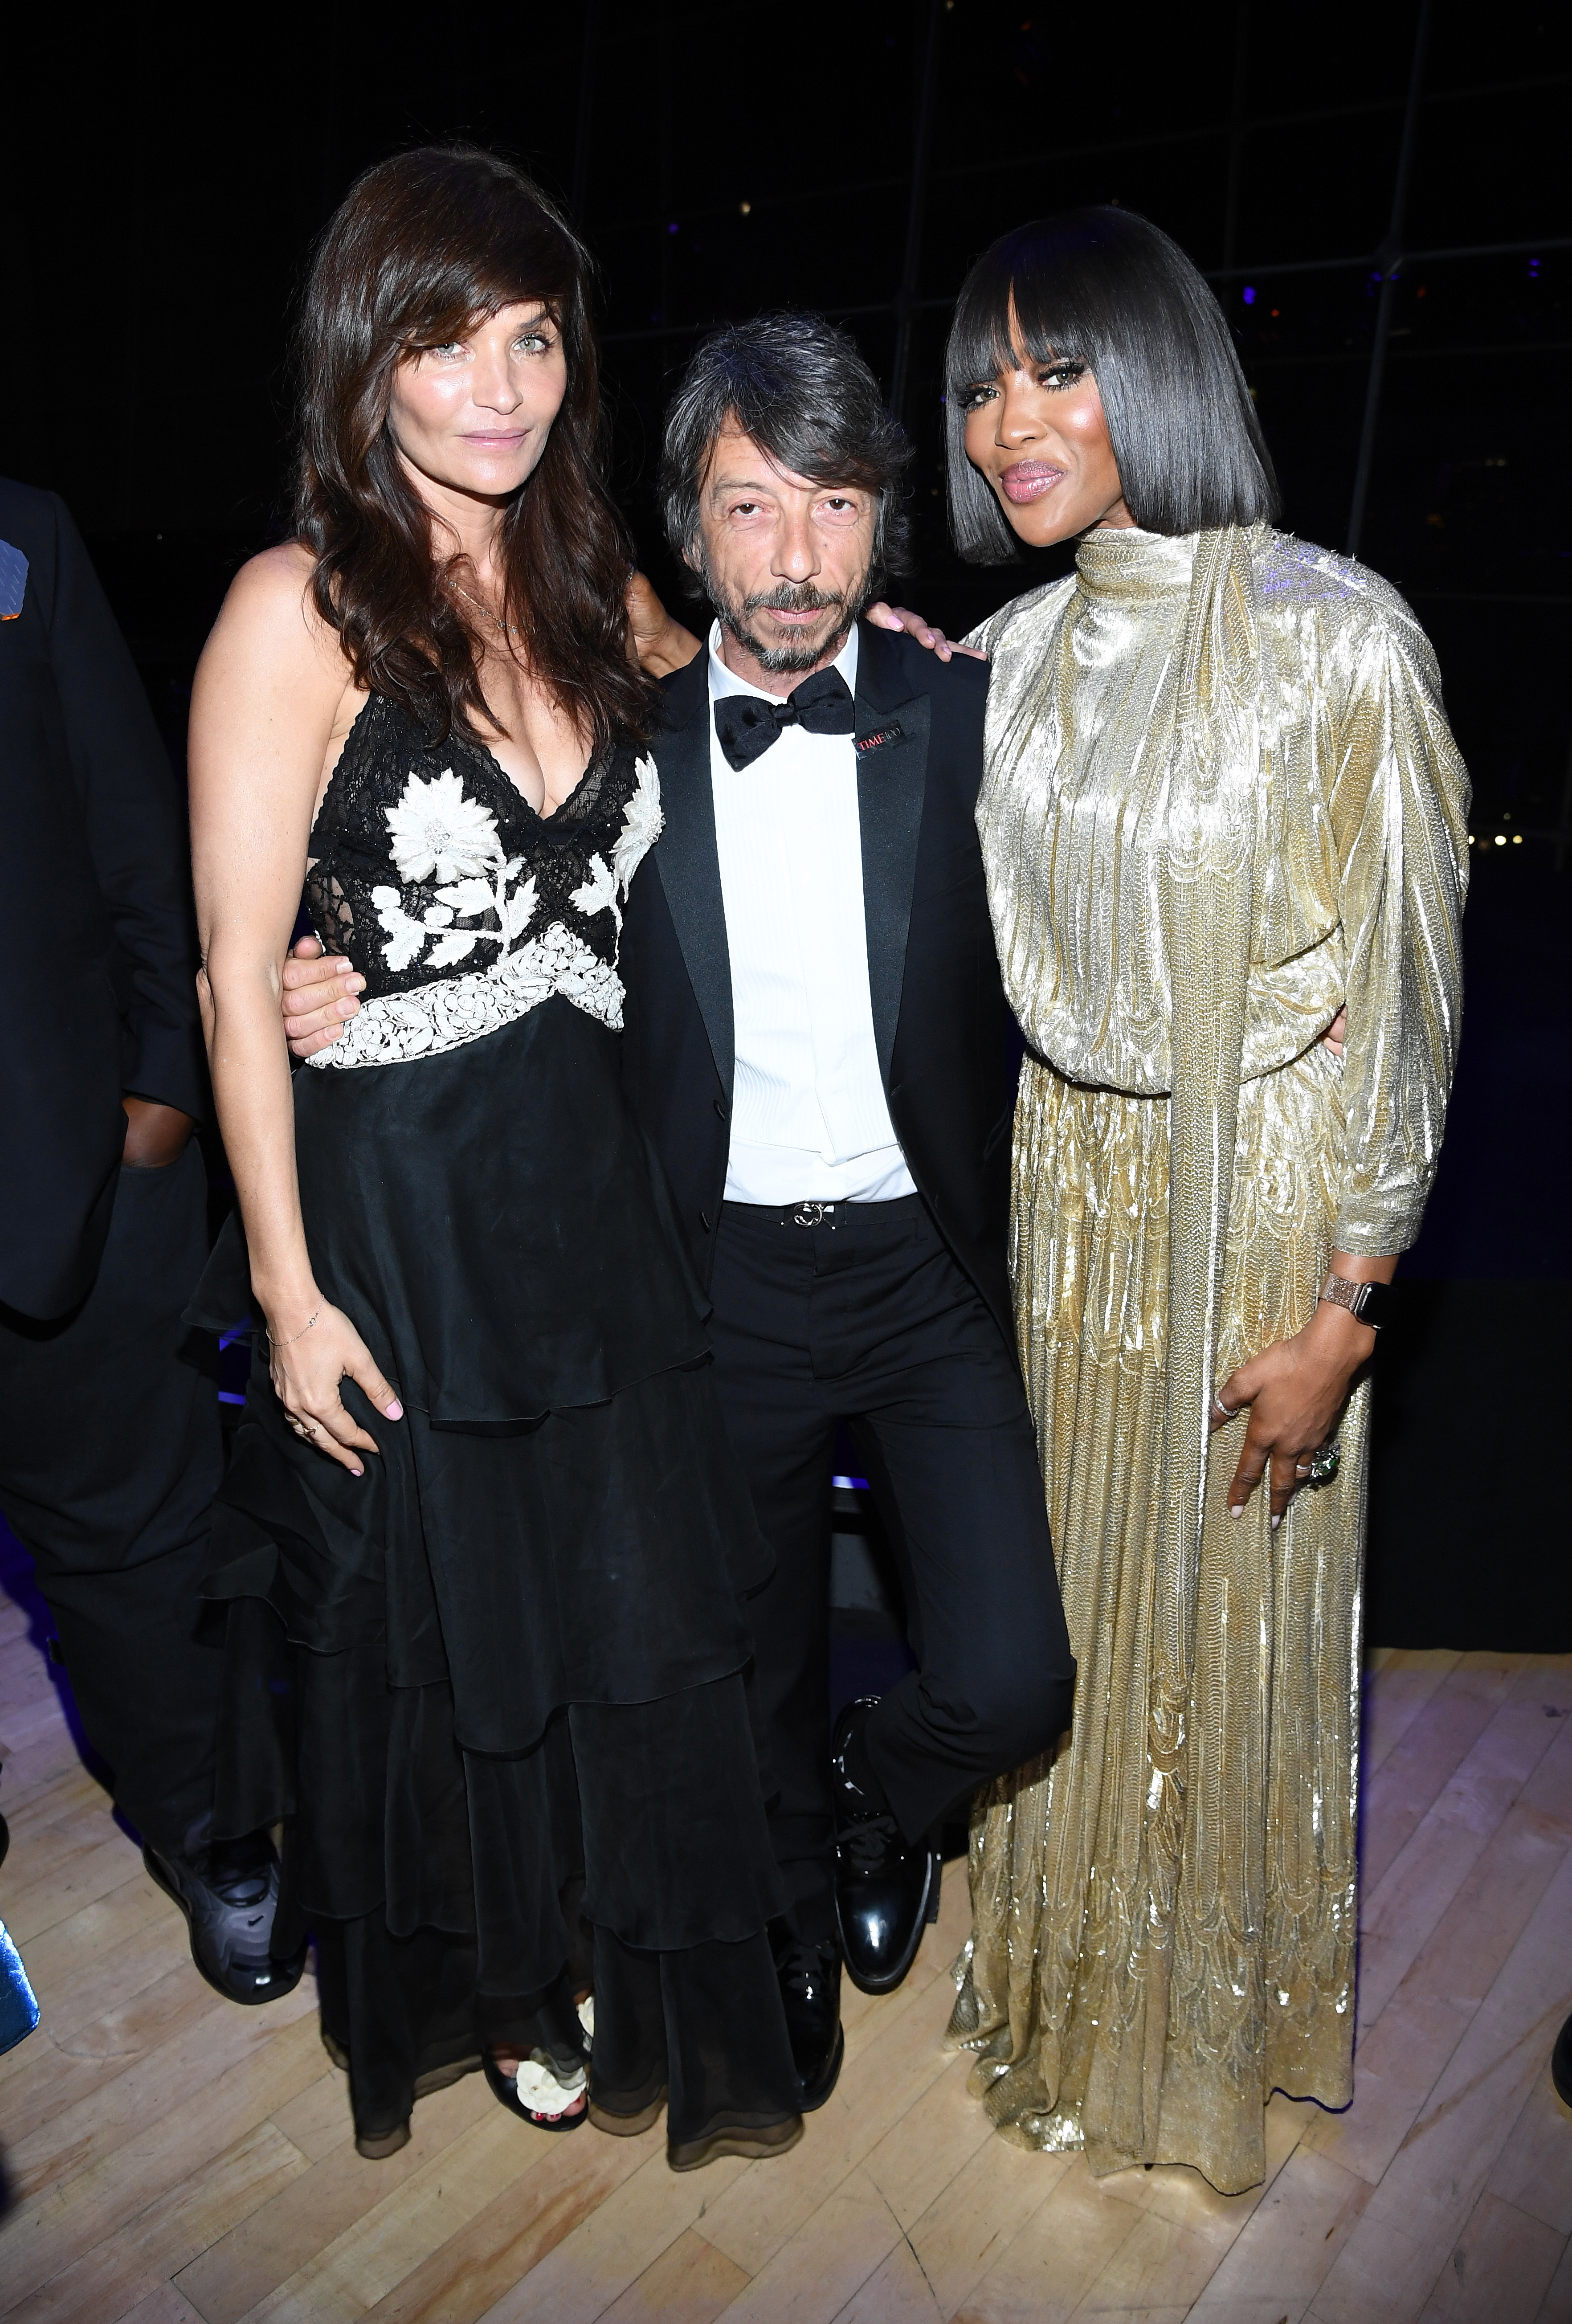 Helena Christensen, Pierpaolo Piccioli and Naomi Campbell pose together at the TIME 100 Gala 2019 dinner at Jazz at Lincoln Center in New York City on April 23, 2019.